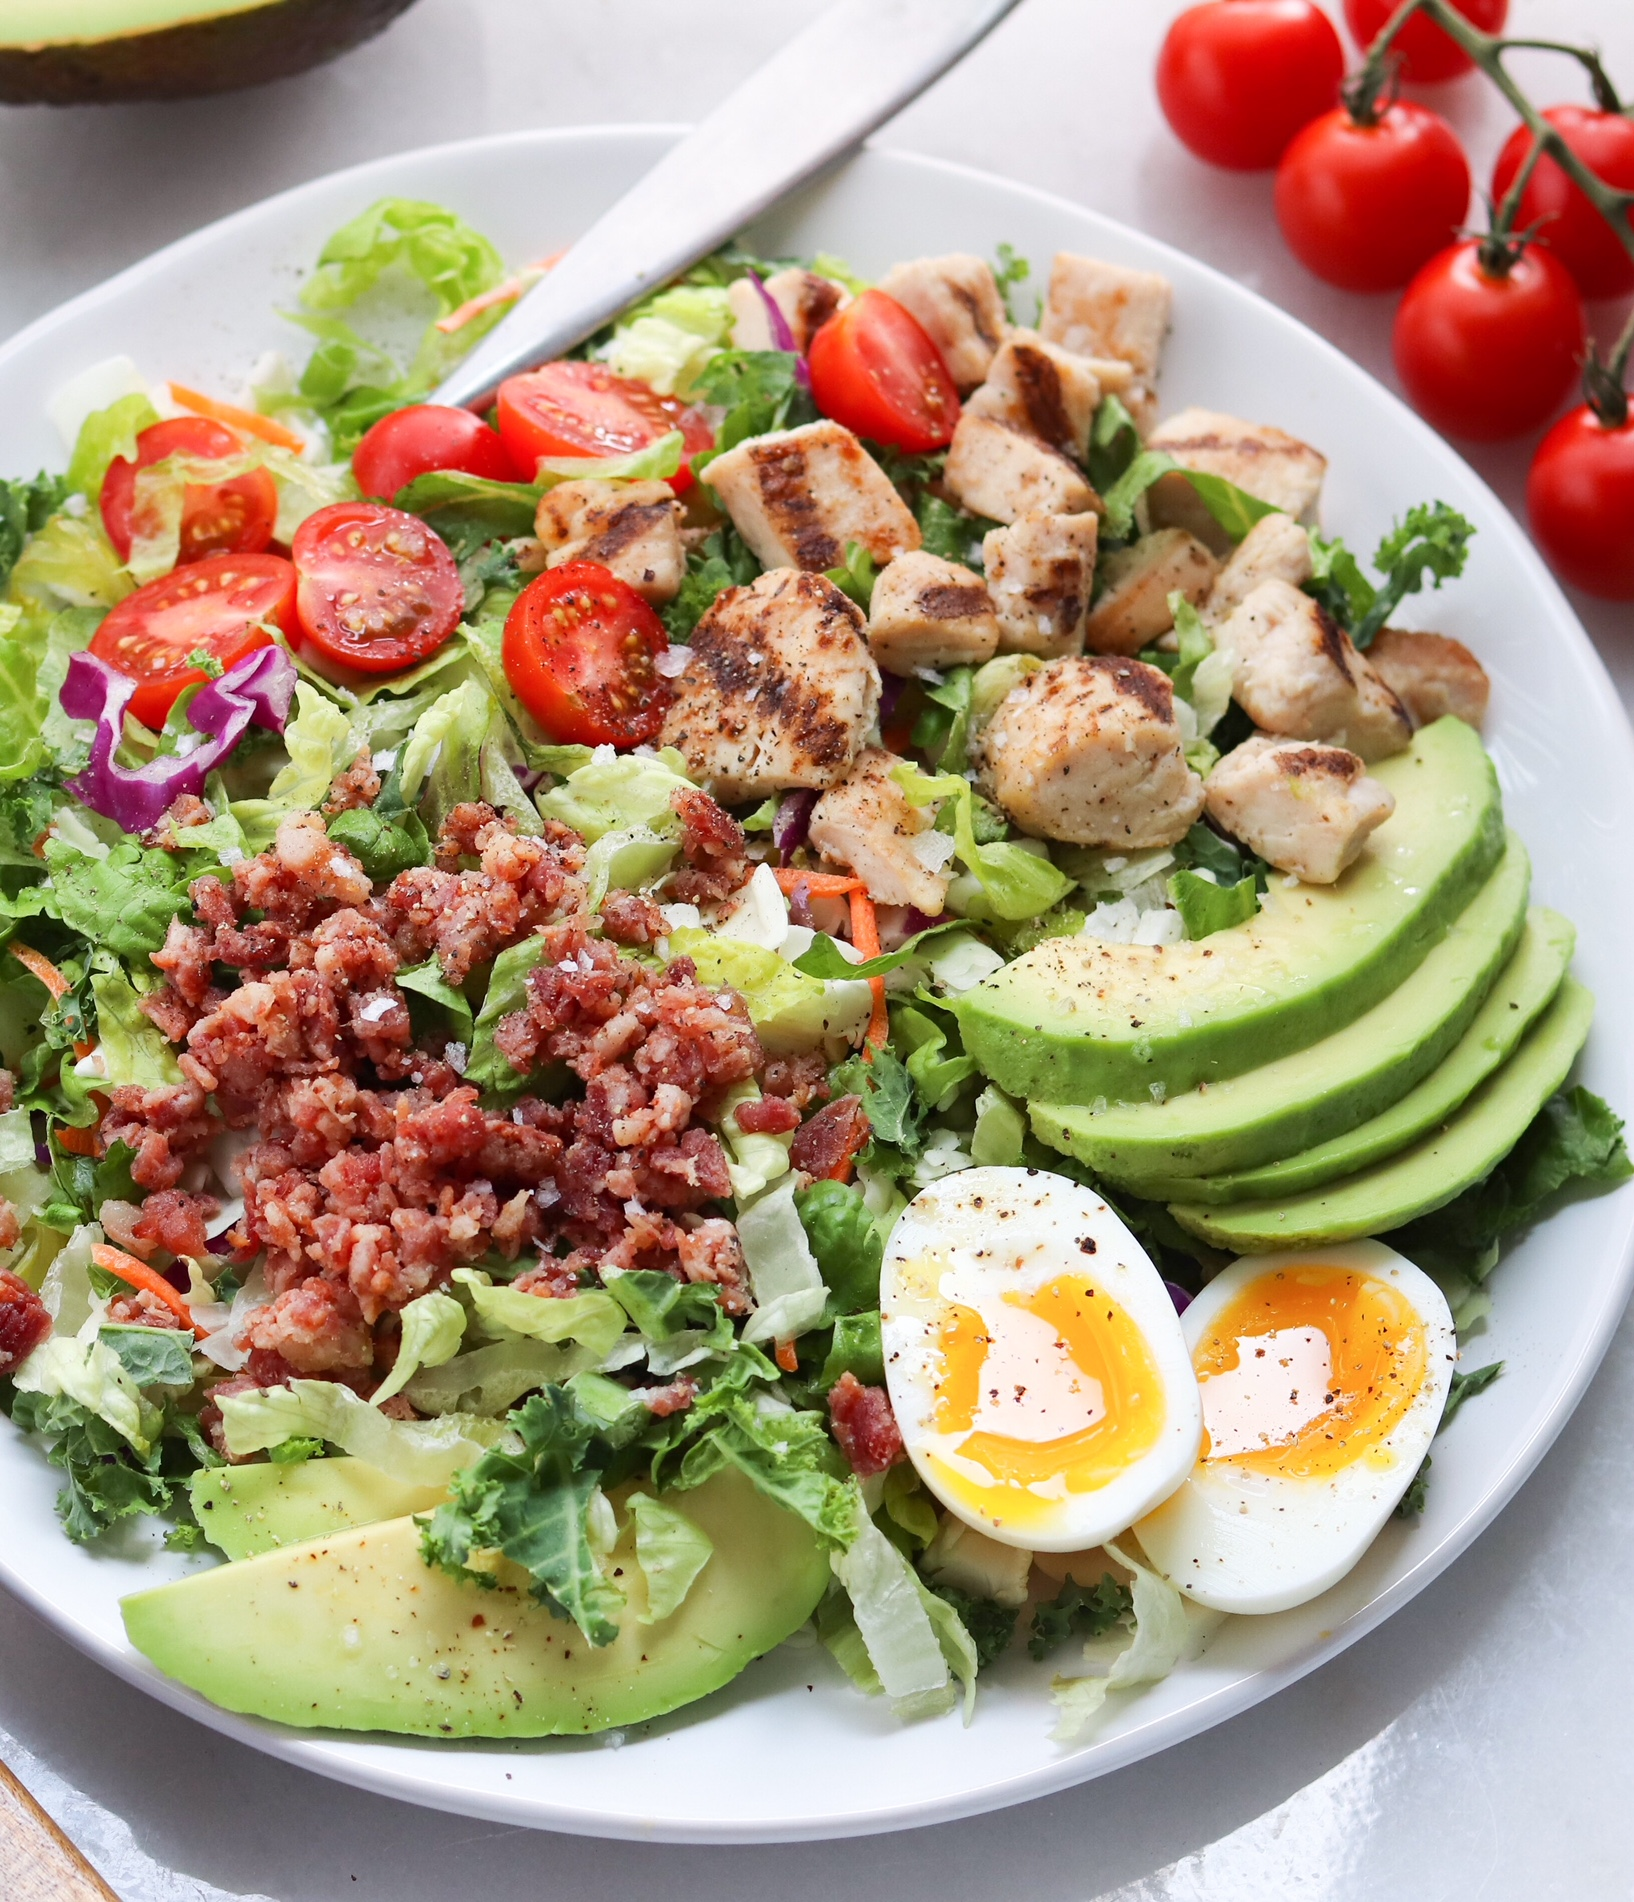 Close up of the finished salad topped with eggs, tomatoes, and avocado on a large white plate.